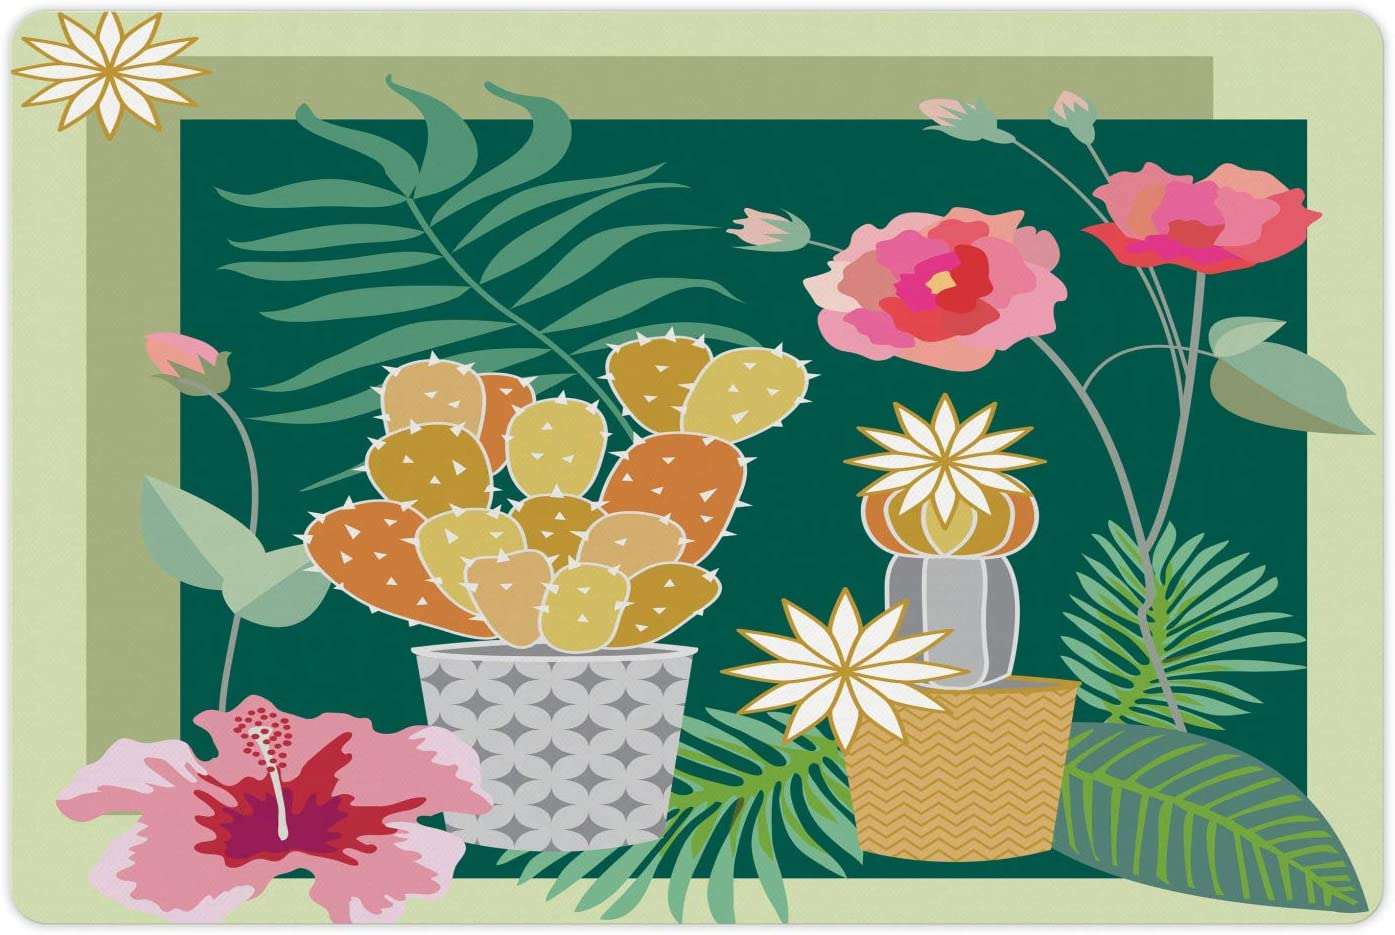 Ambesonne Cactus Pet Mat for Food and Water, Succulent Plants Hibiscus Flowers Palm Monstera Boho Foliage Art, Non-Slip Rubber Mat for Dogs and Cats, 18